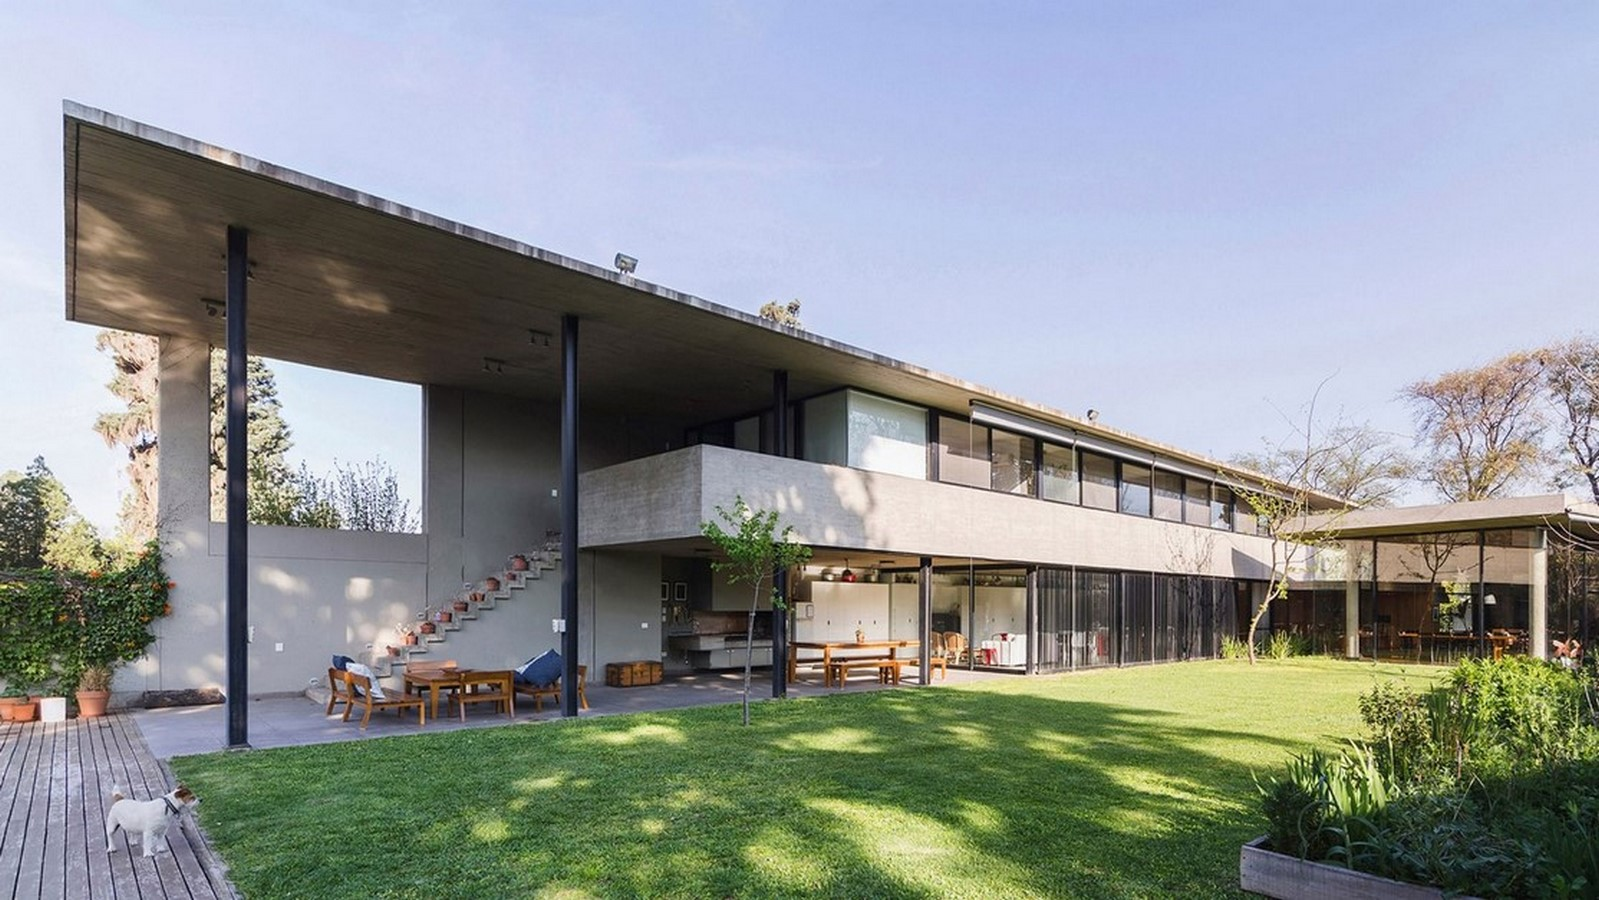 50 Examples of Modern concrete homes - Sheet19